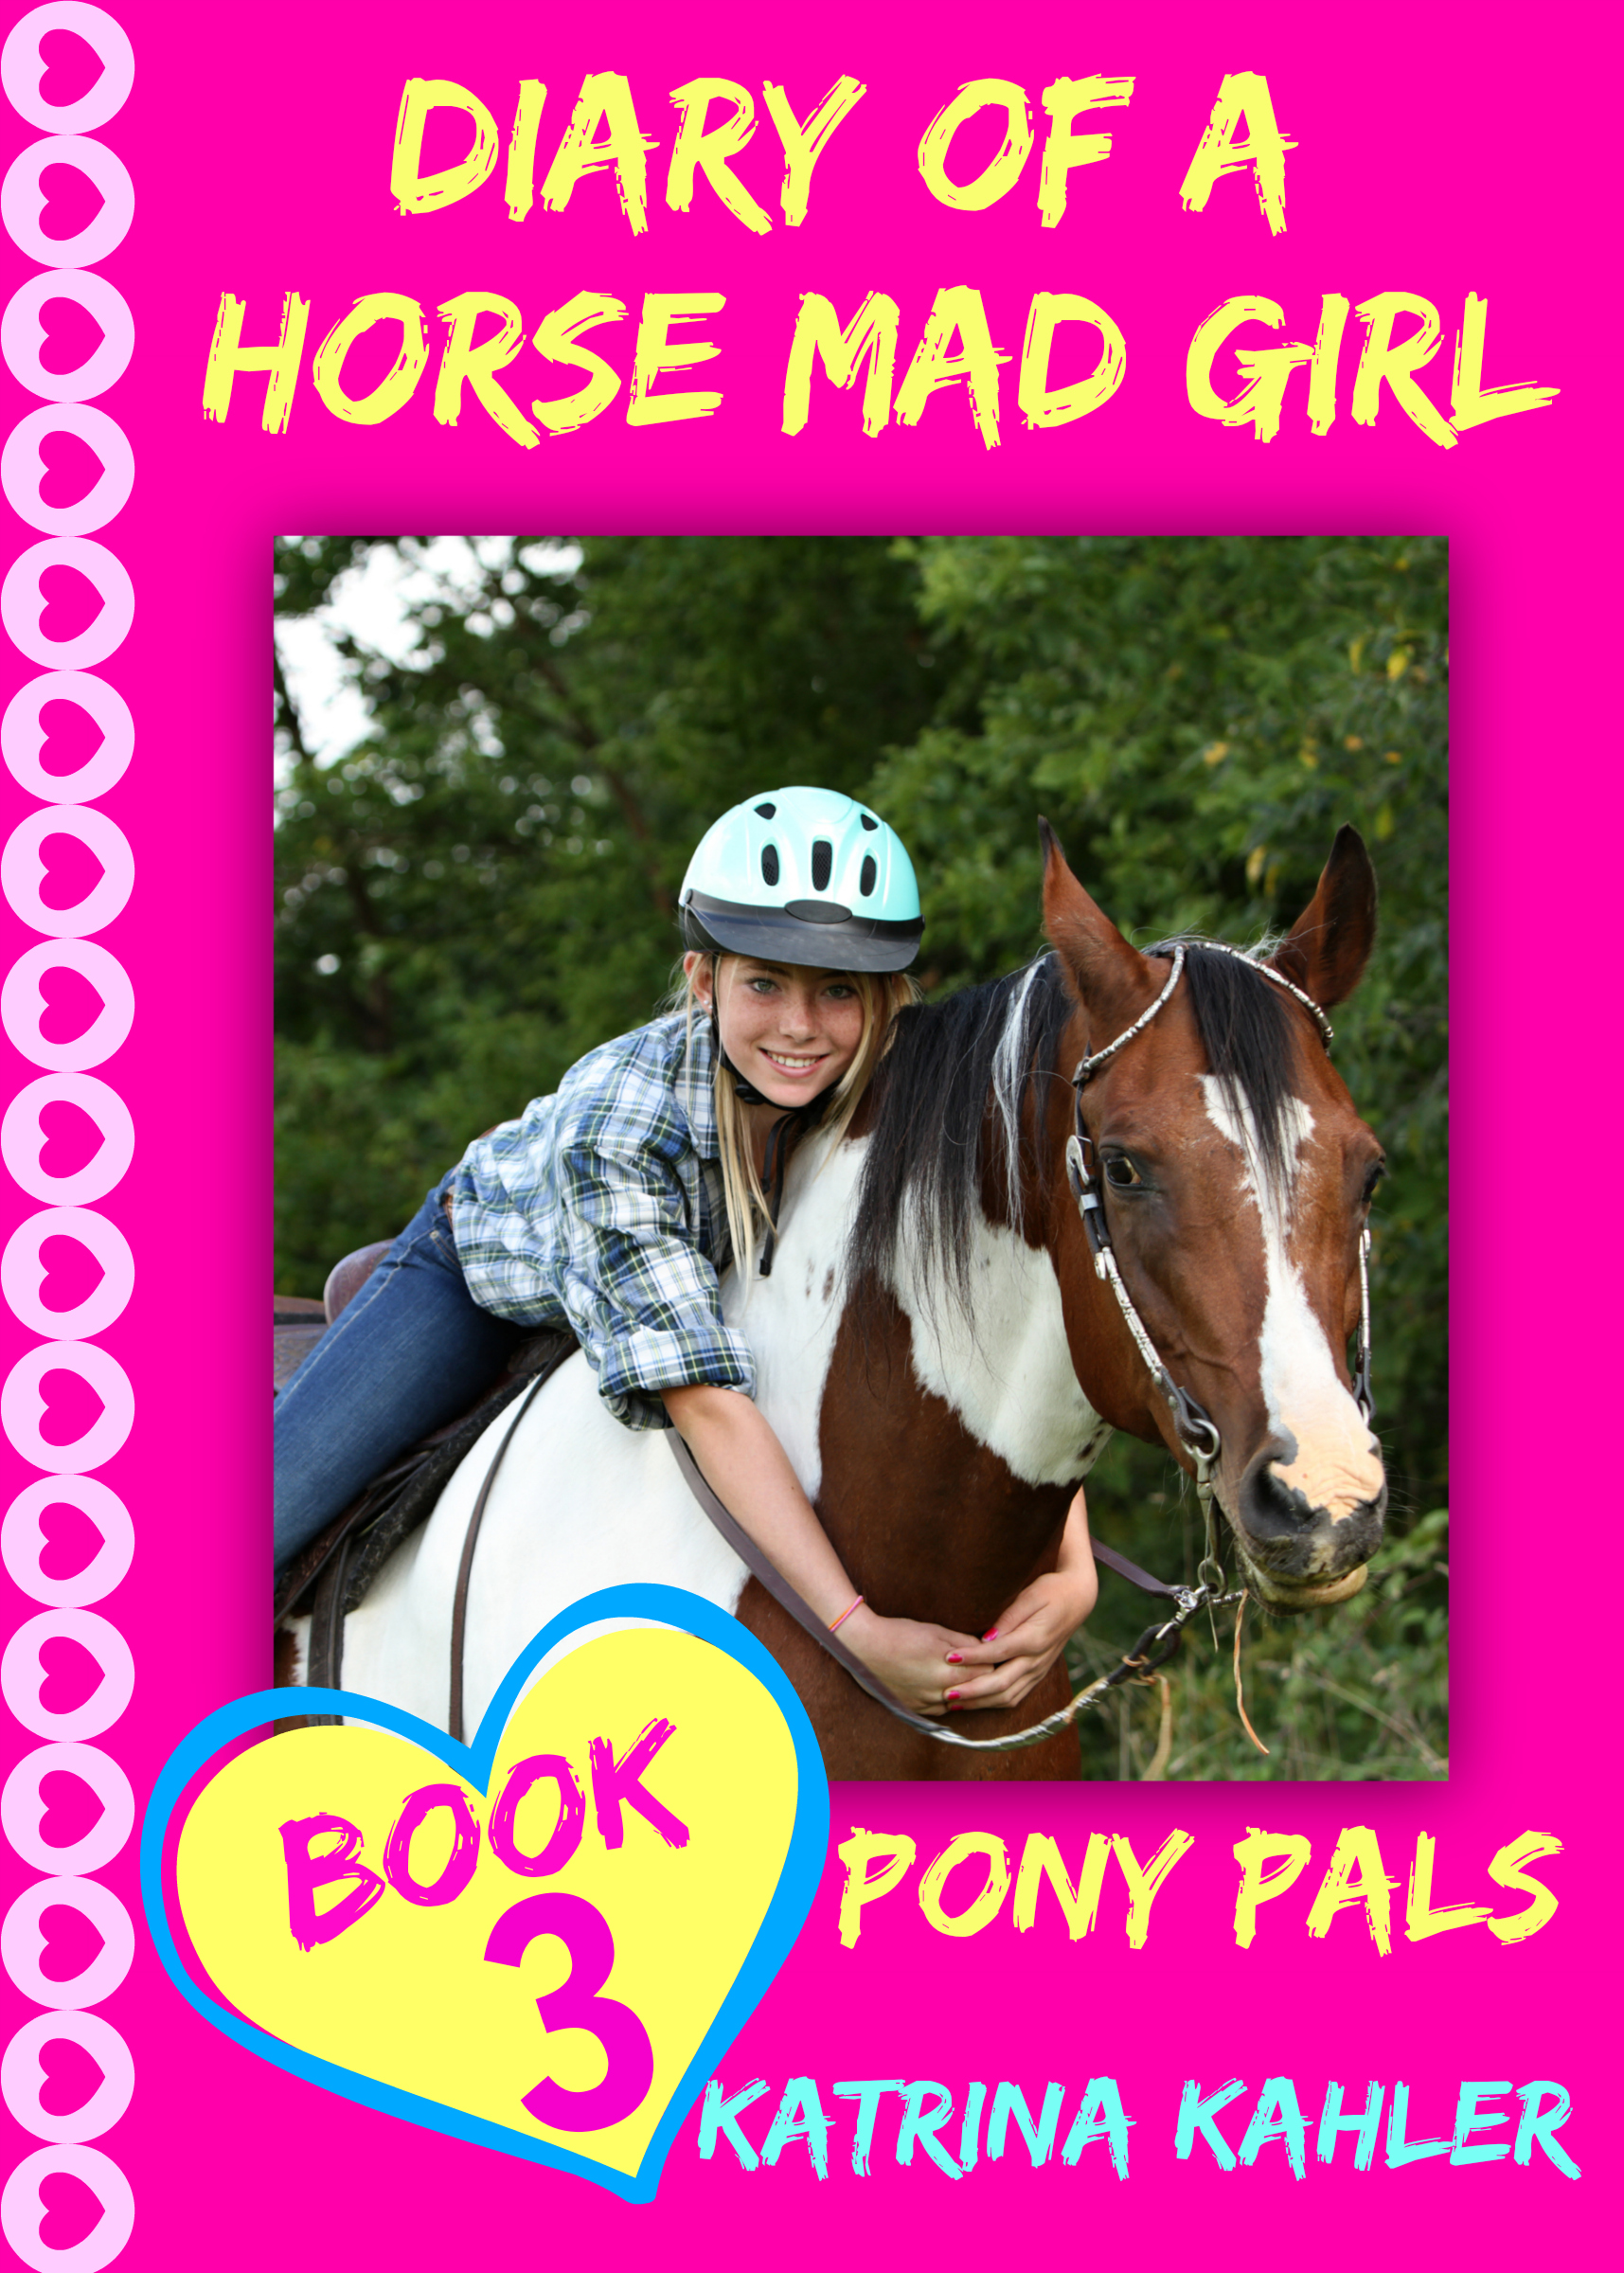 Diary of a horse mad girl - book 3 - pony pals